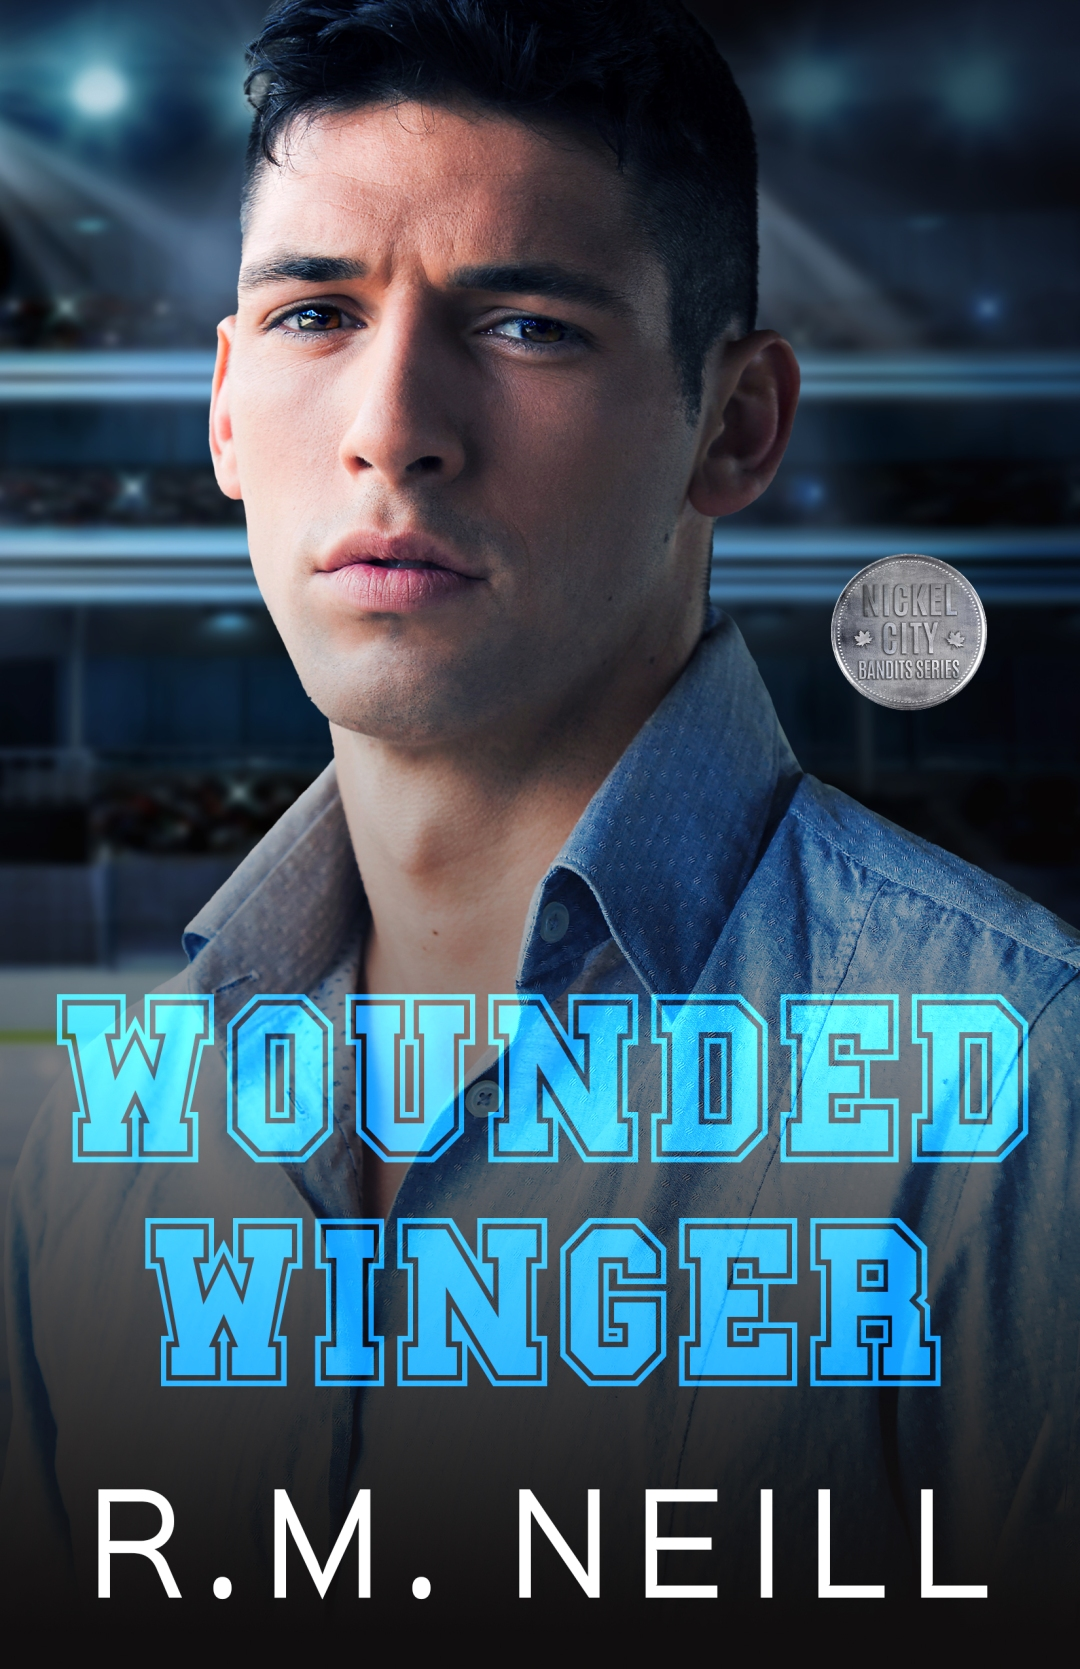 Wounded Winger Ebook